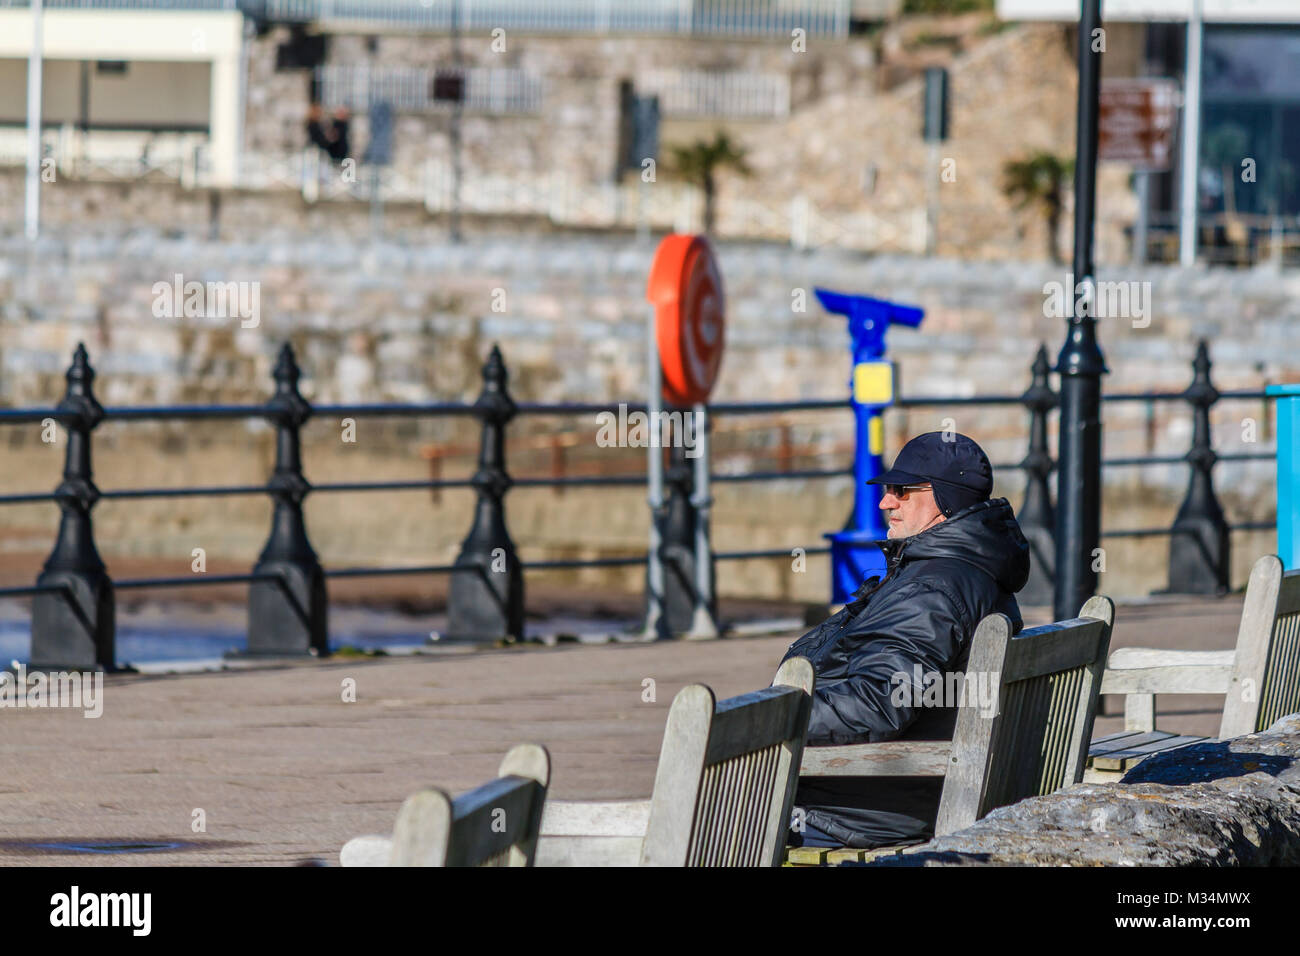 Older man sat on bench on Torquay promenade, in bright sunny but chilly weather. Torquay, Torbay, Devon, UK. February - Stock Image